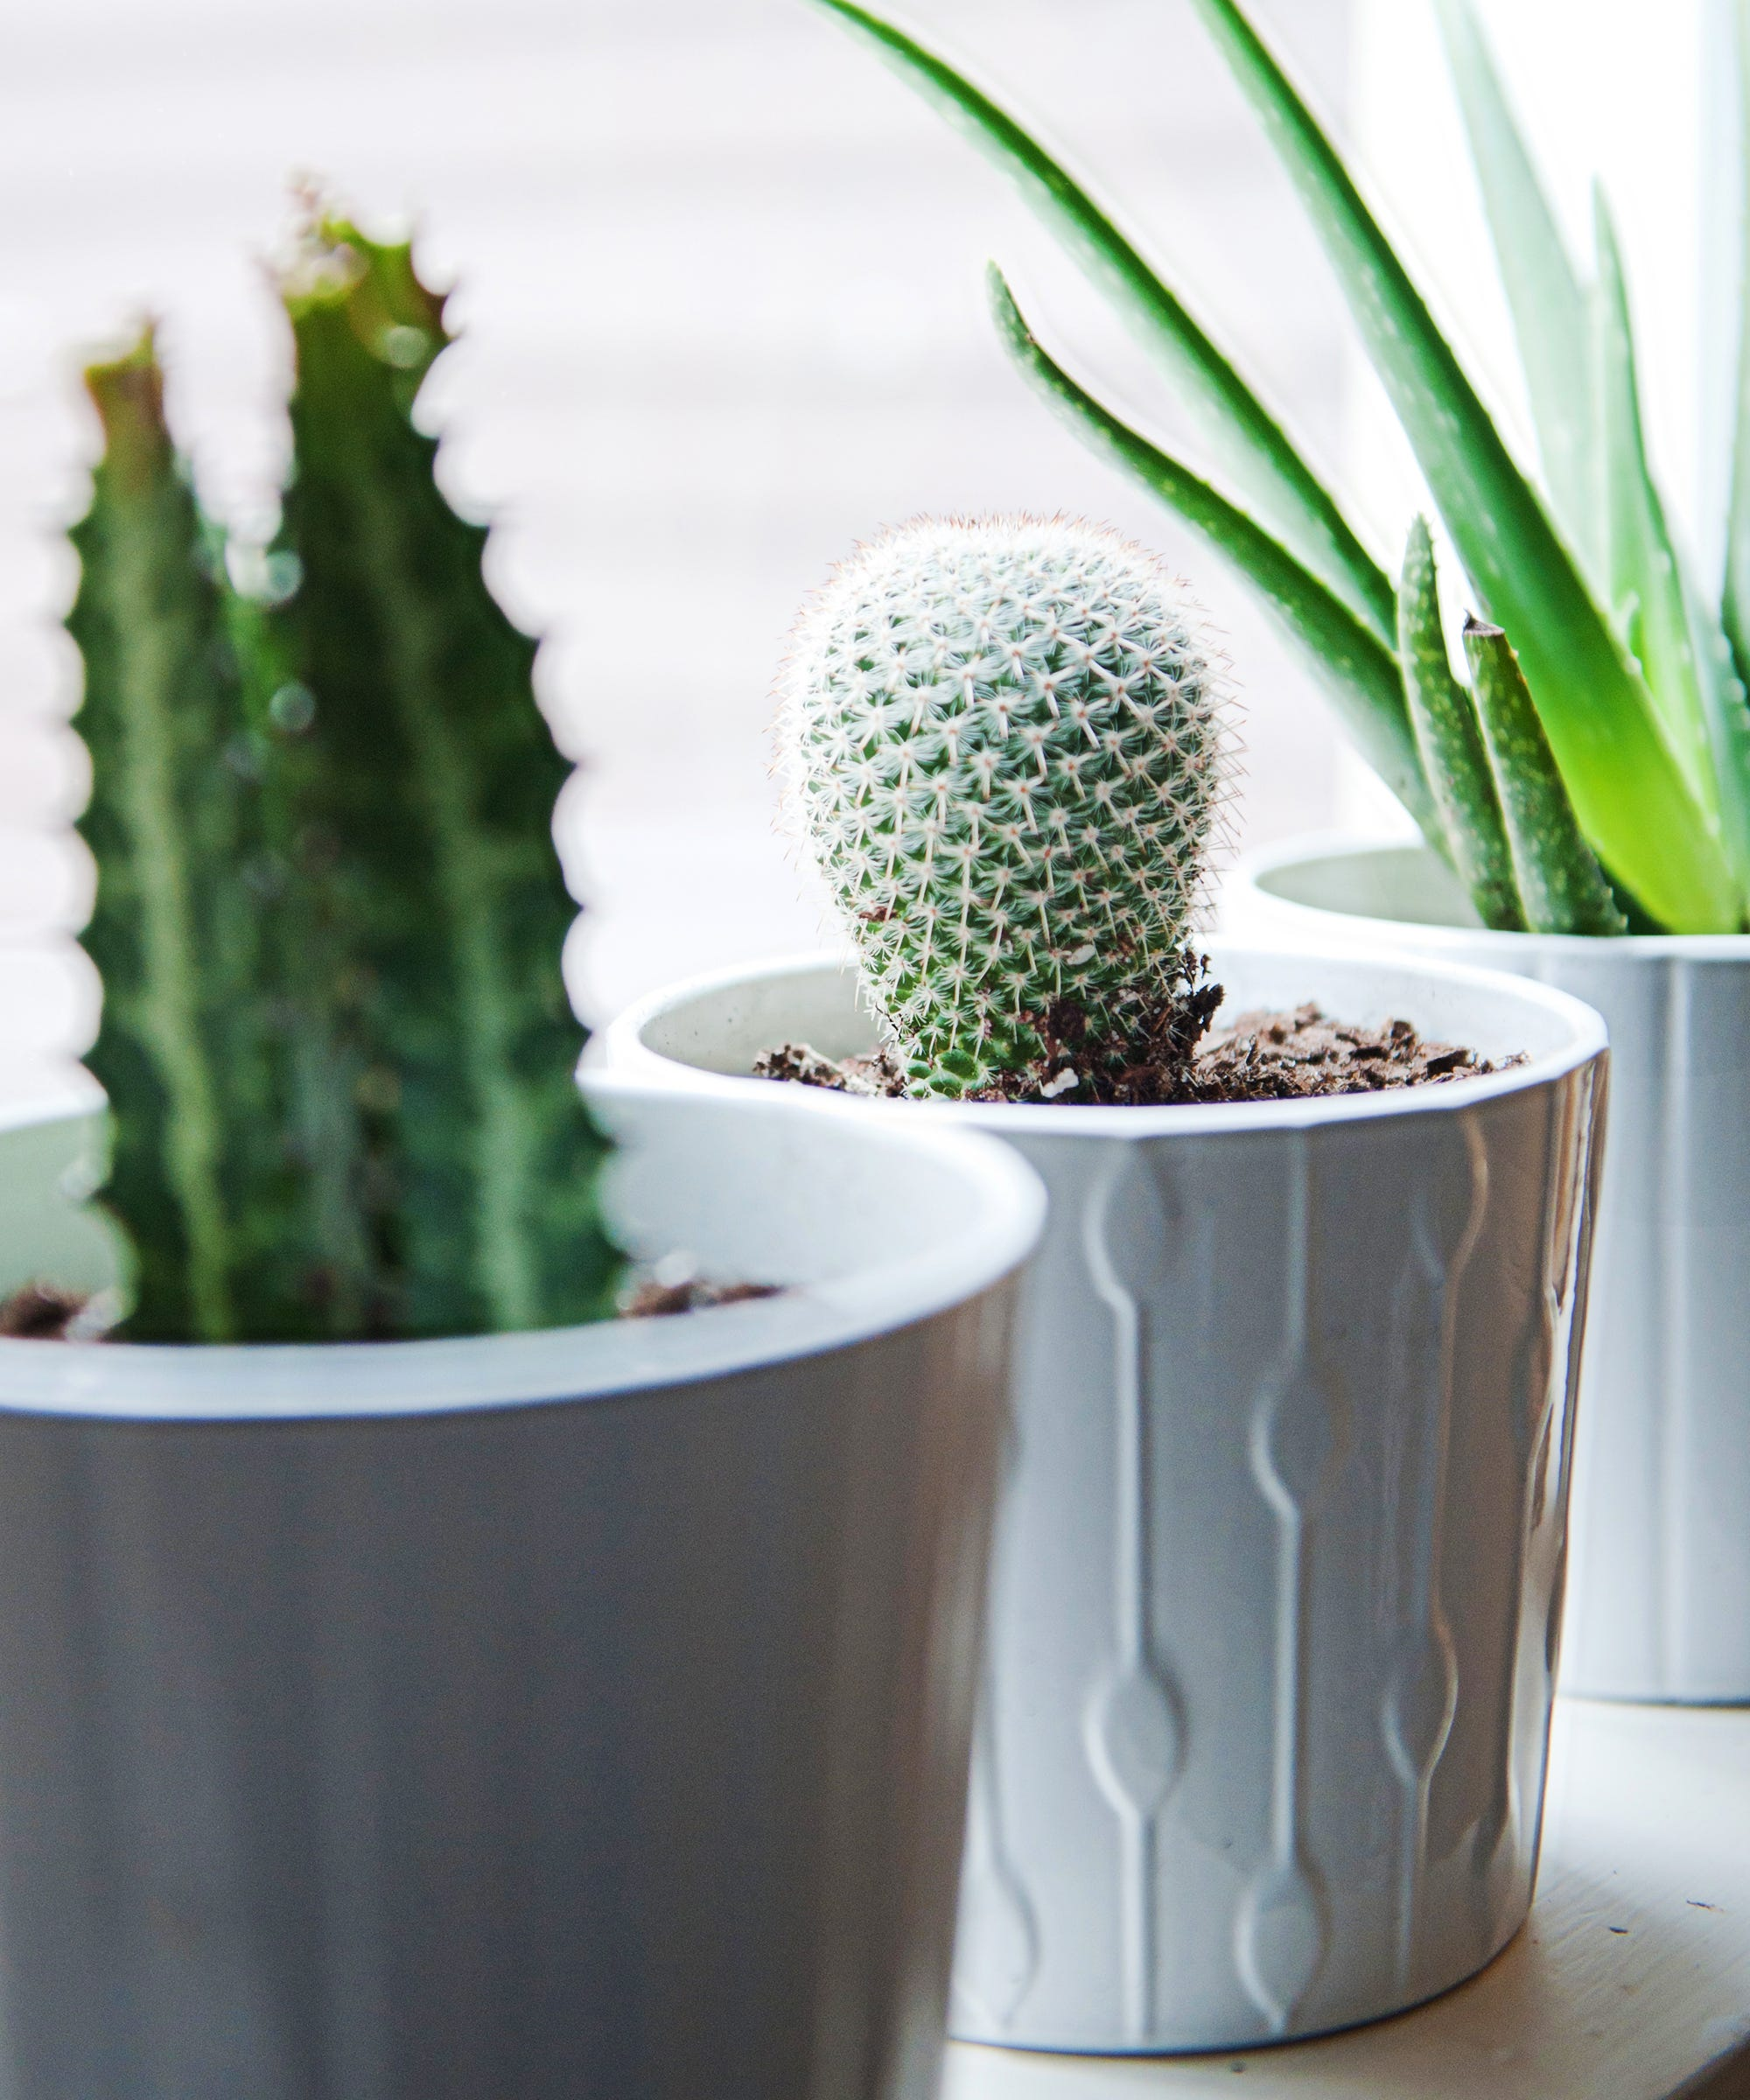 Apartment Gardening Is The Latest Trend In House Plants But What It